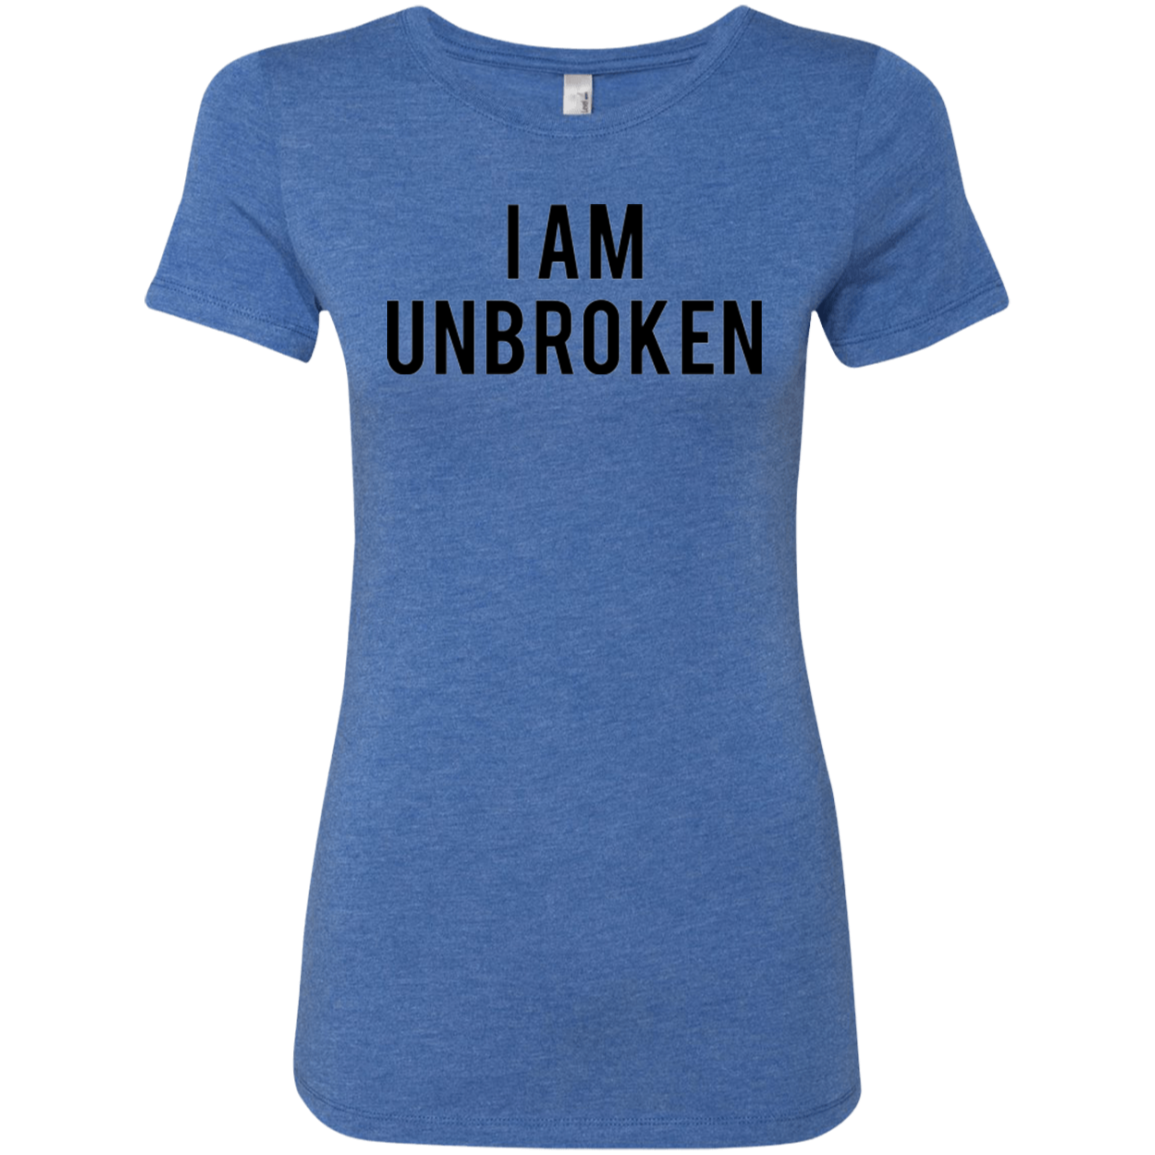 I Am Unbroken Women's Classic Tee - Trendy Tees